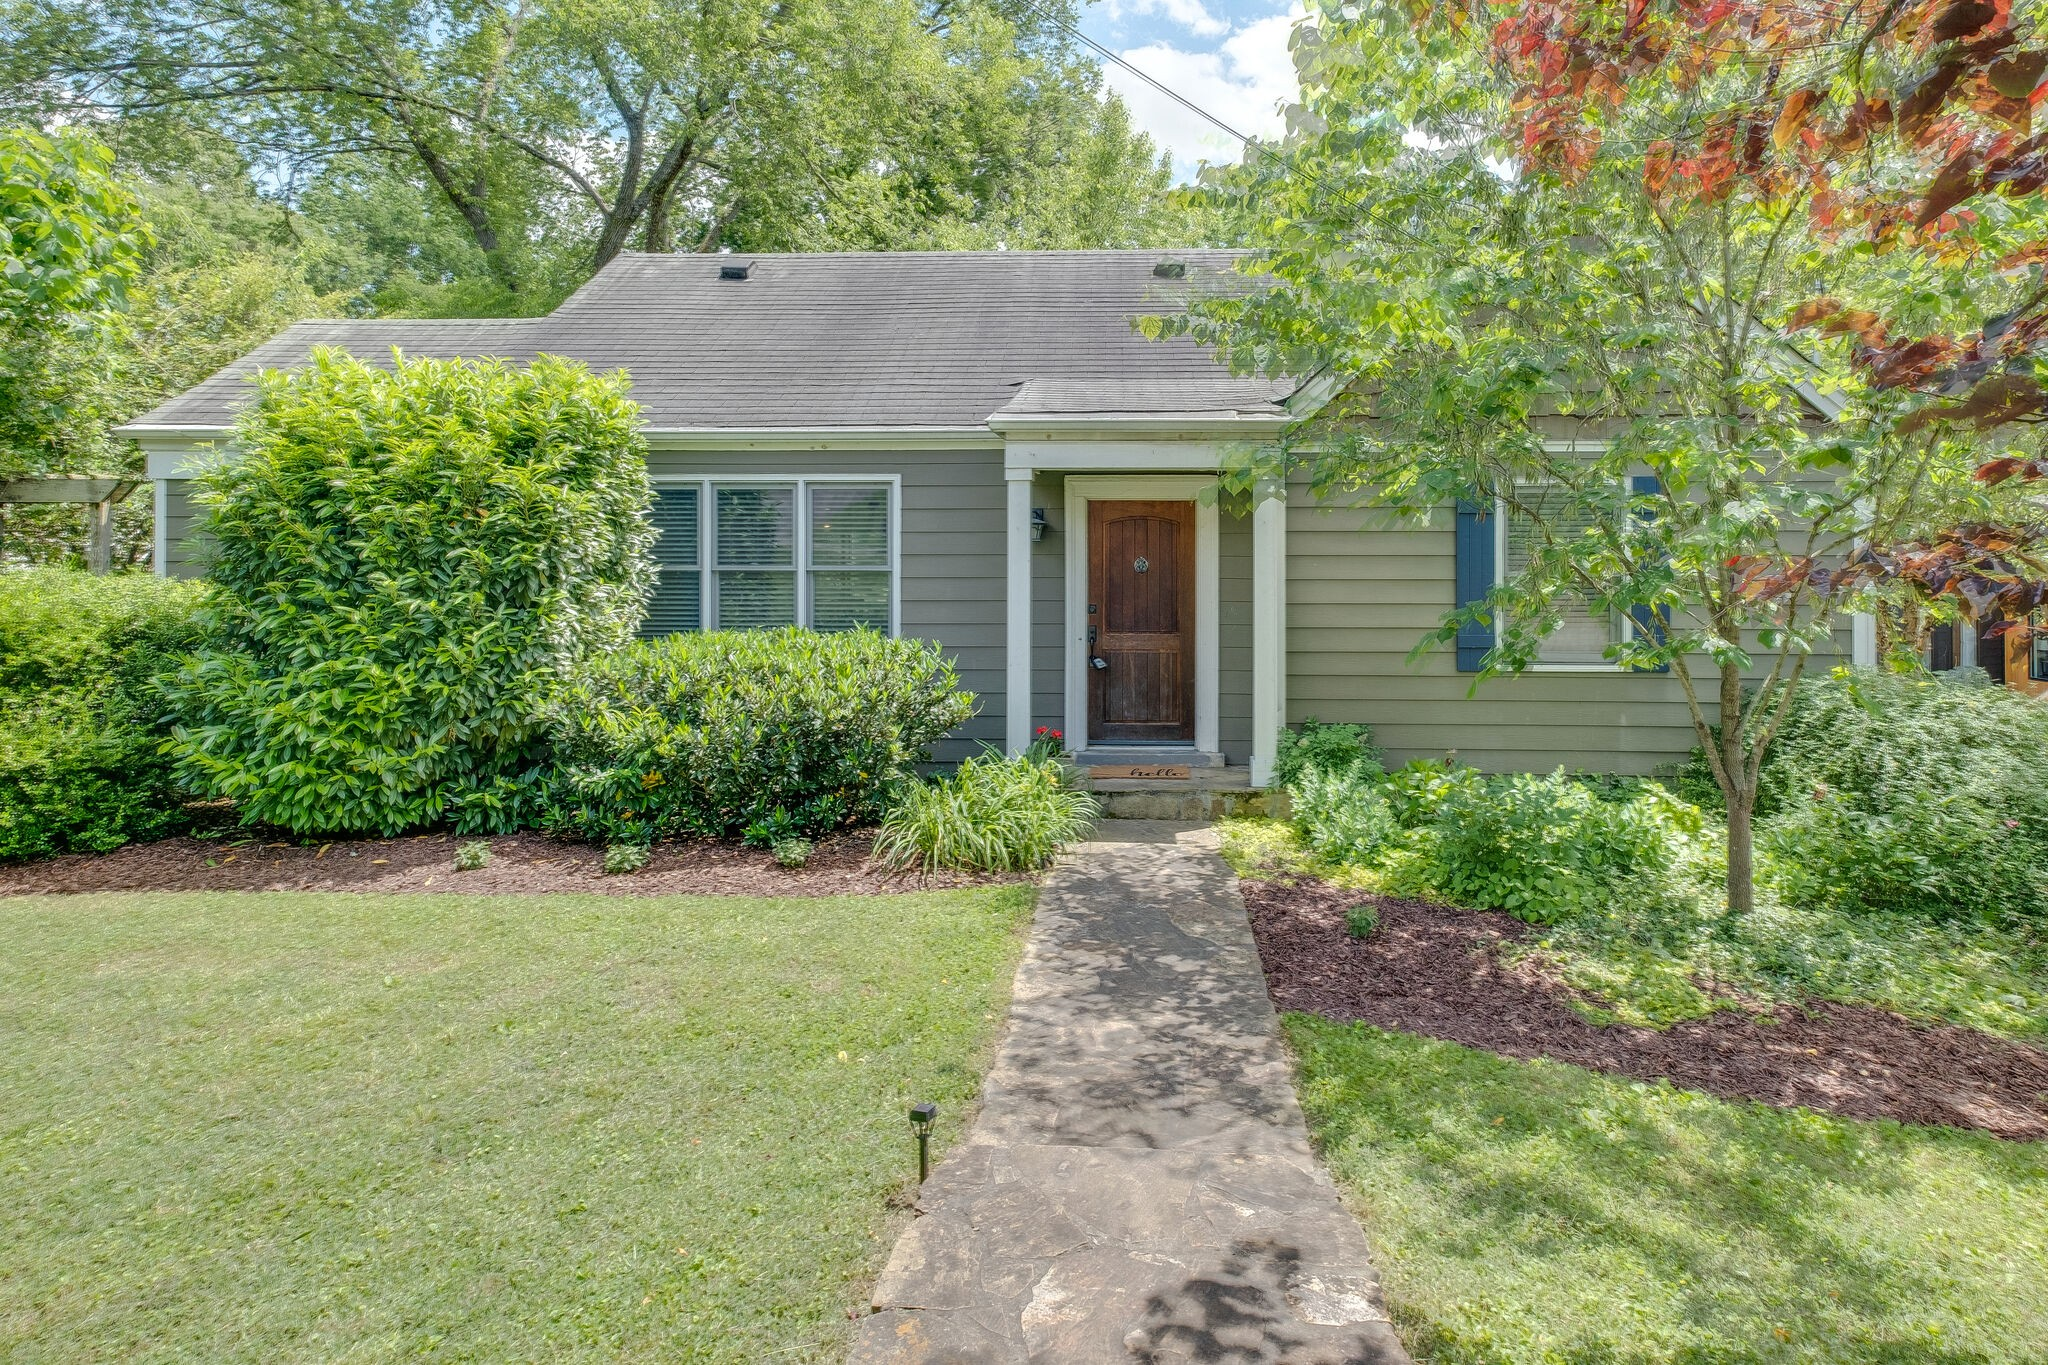 821 Horner Ave Property Photo - Nashville, TN real estate listing